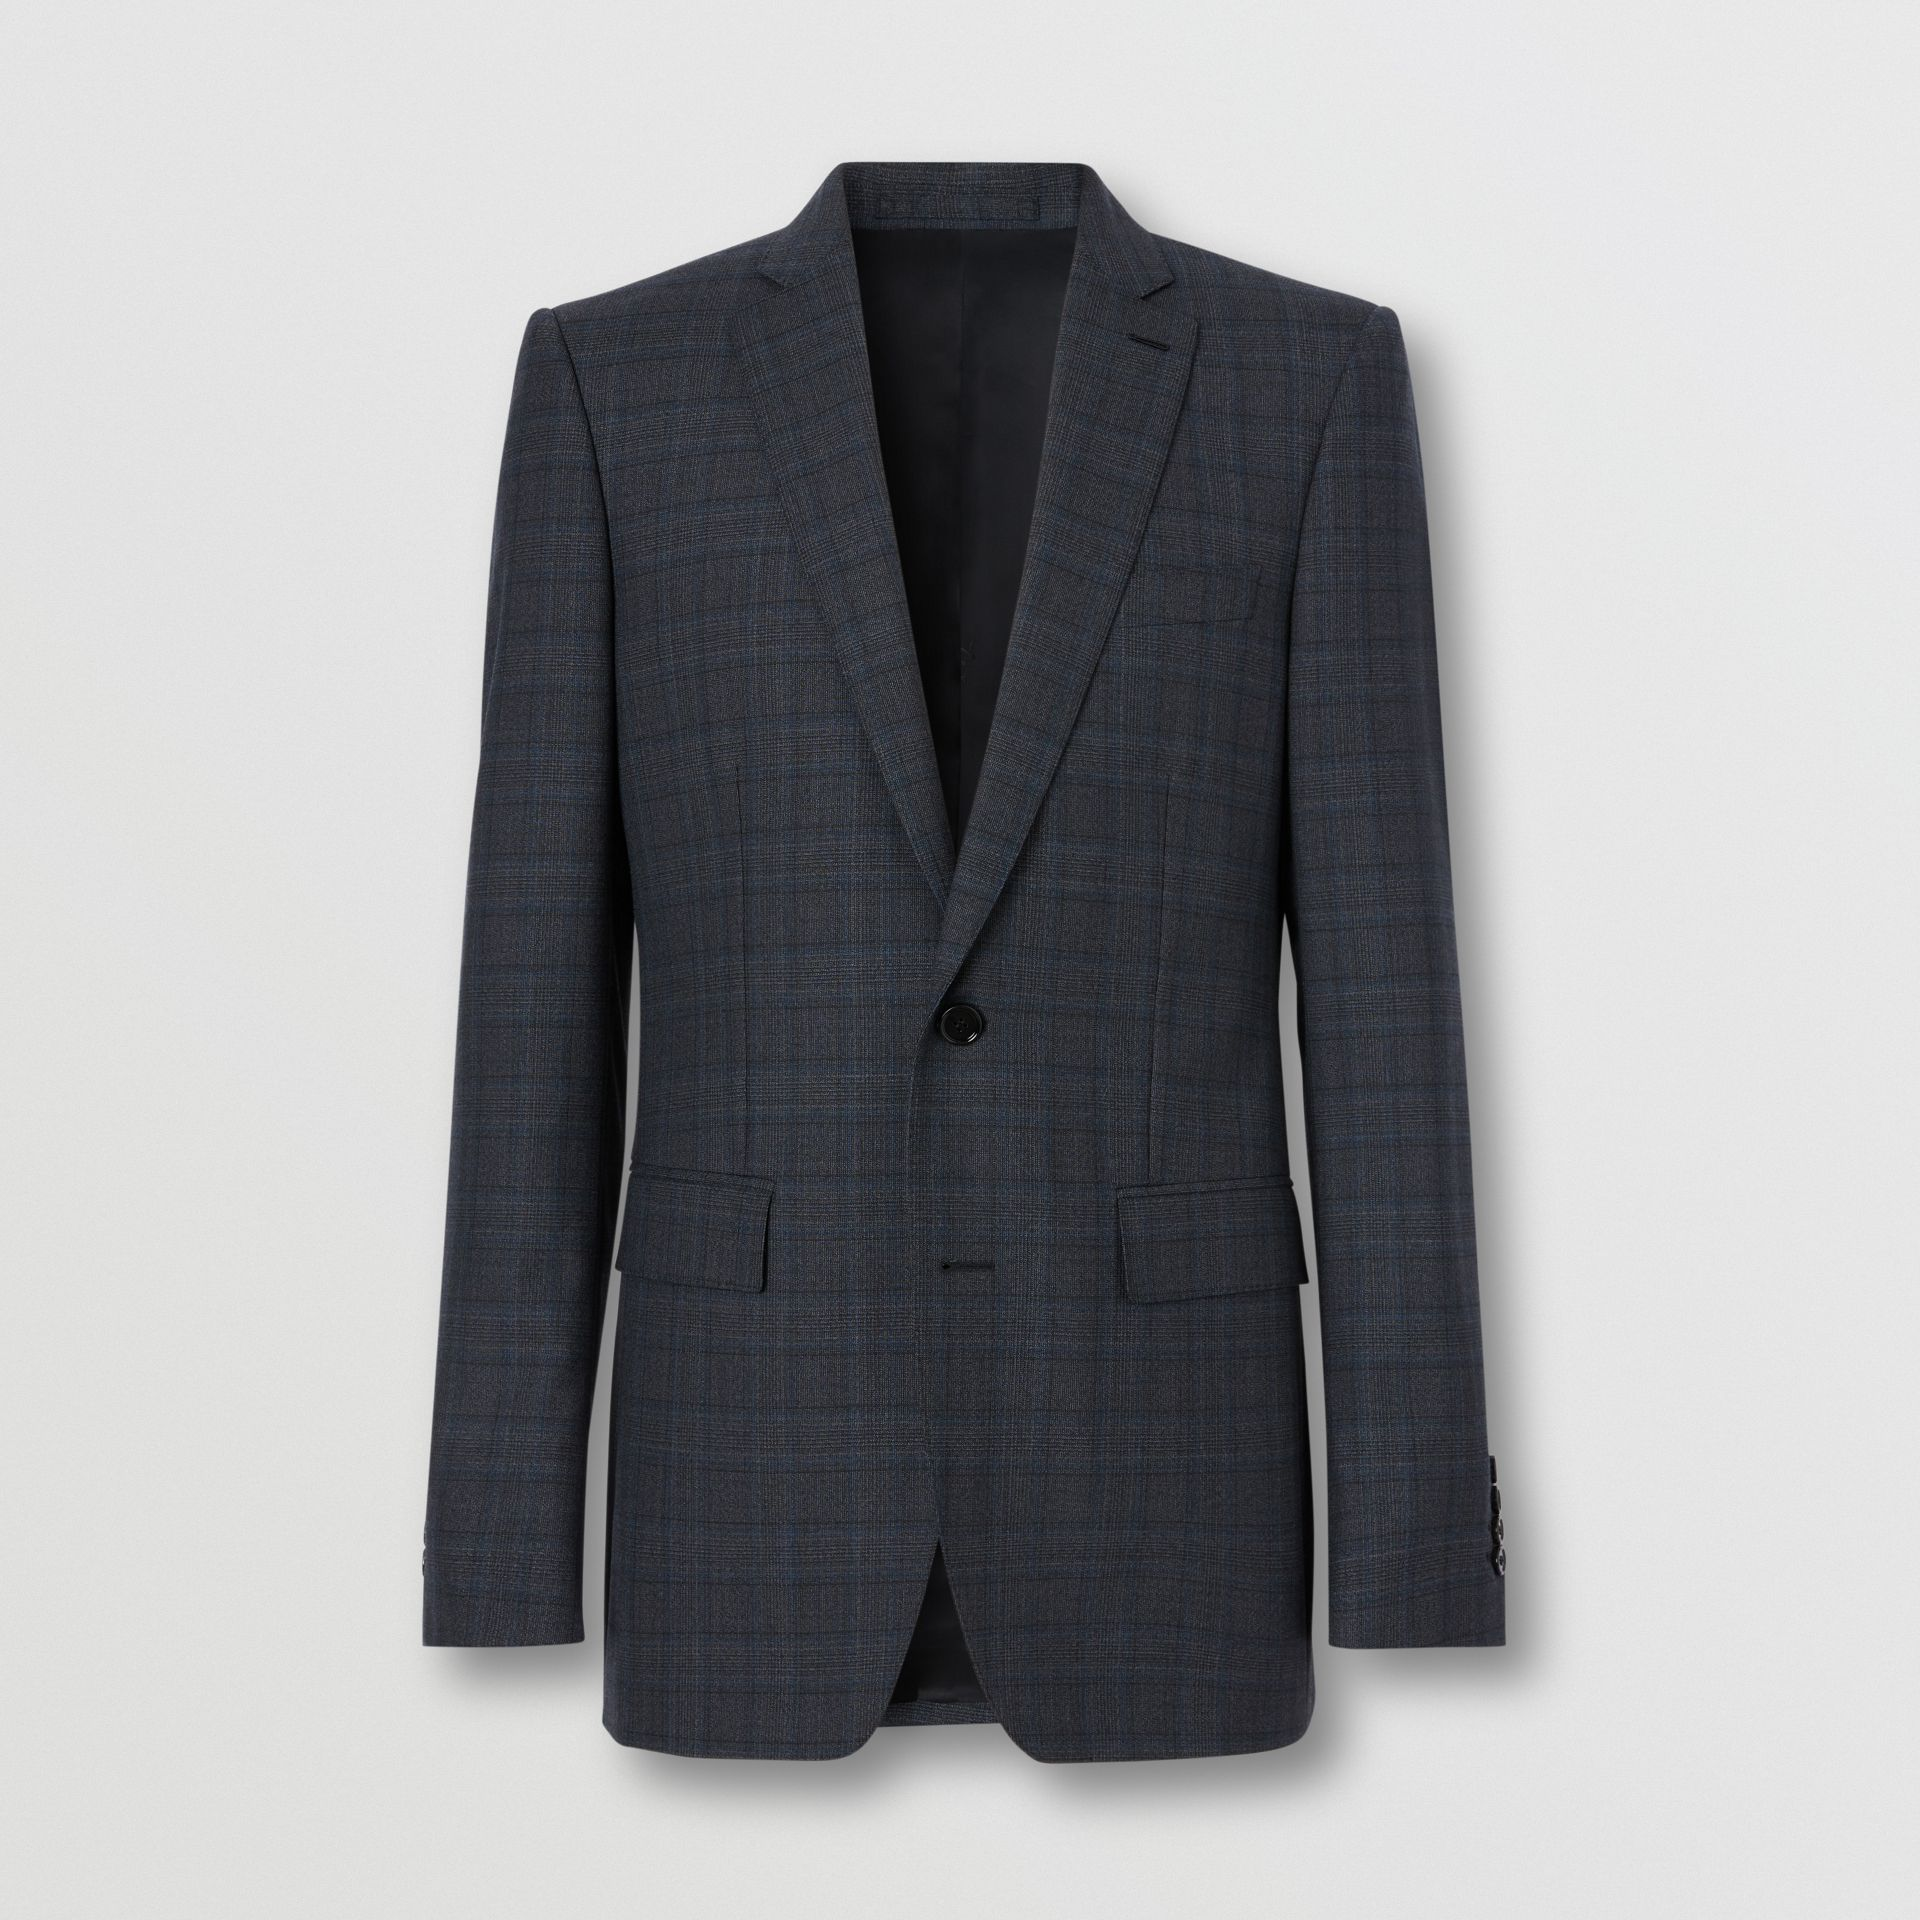 English Fit Check Wool Suit in Steel Blue | Burberry - gallery image 3